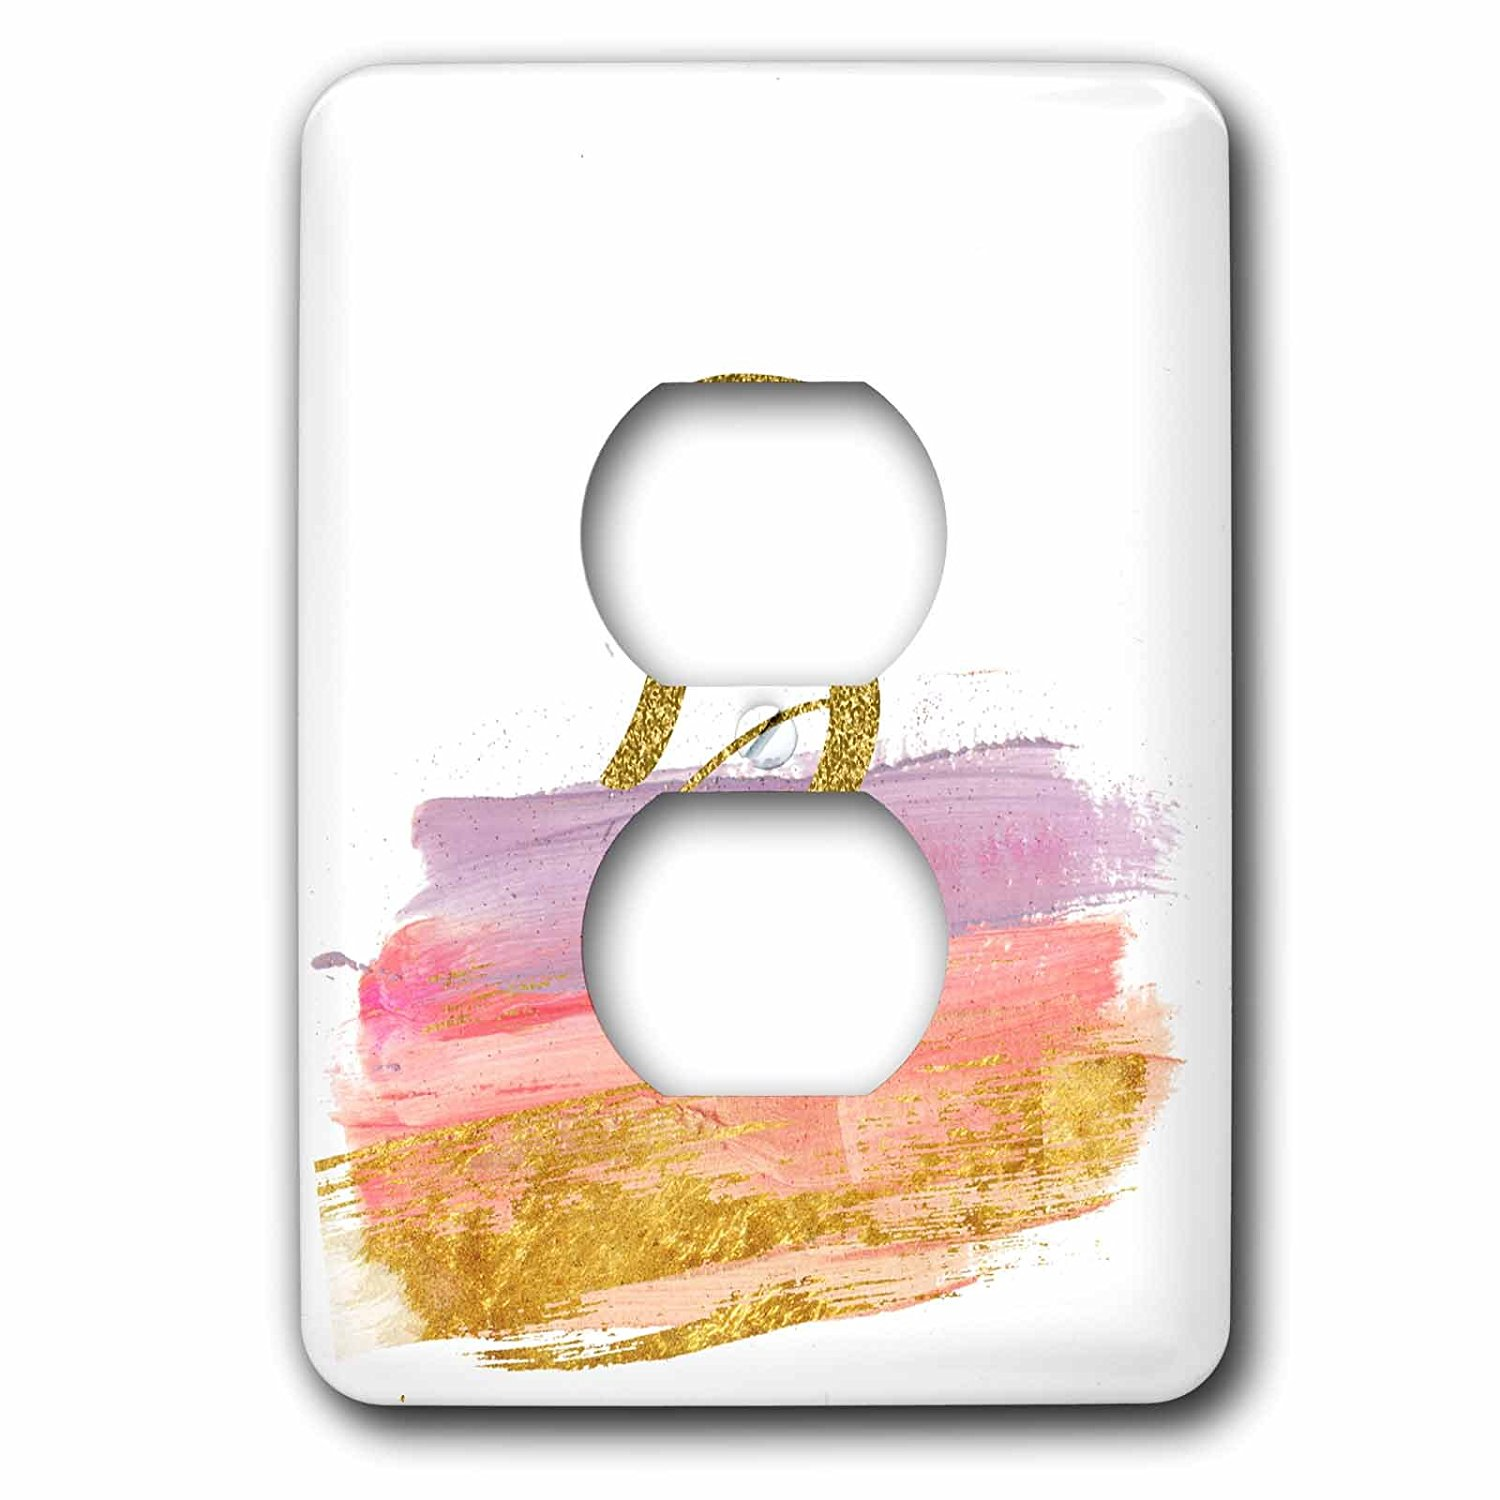 3dRose Anne Marie Baugh - Monograms - Modern Purple, Pink, Gold Brush Strokes Monogram B - Light Switch Covers - 2 plug outlet cover (lsp_267746_6)